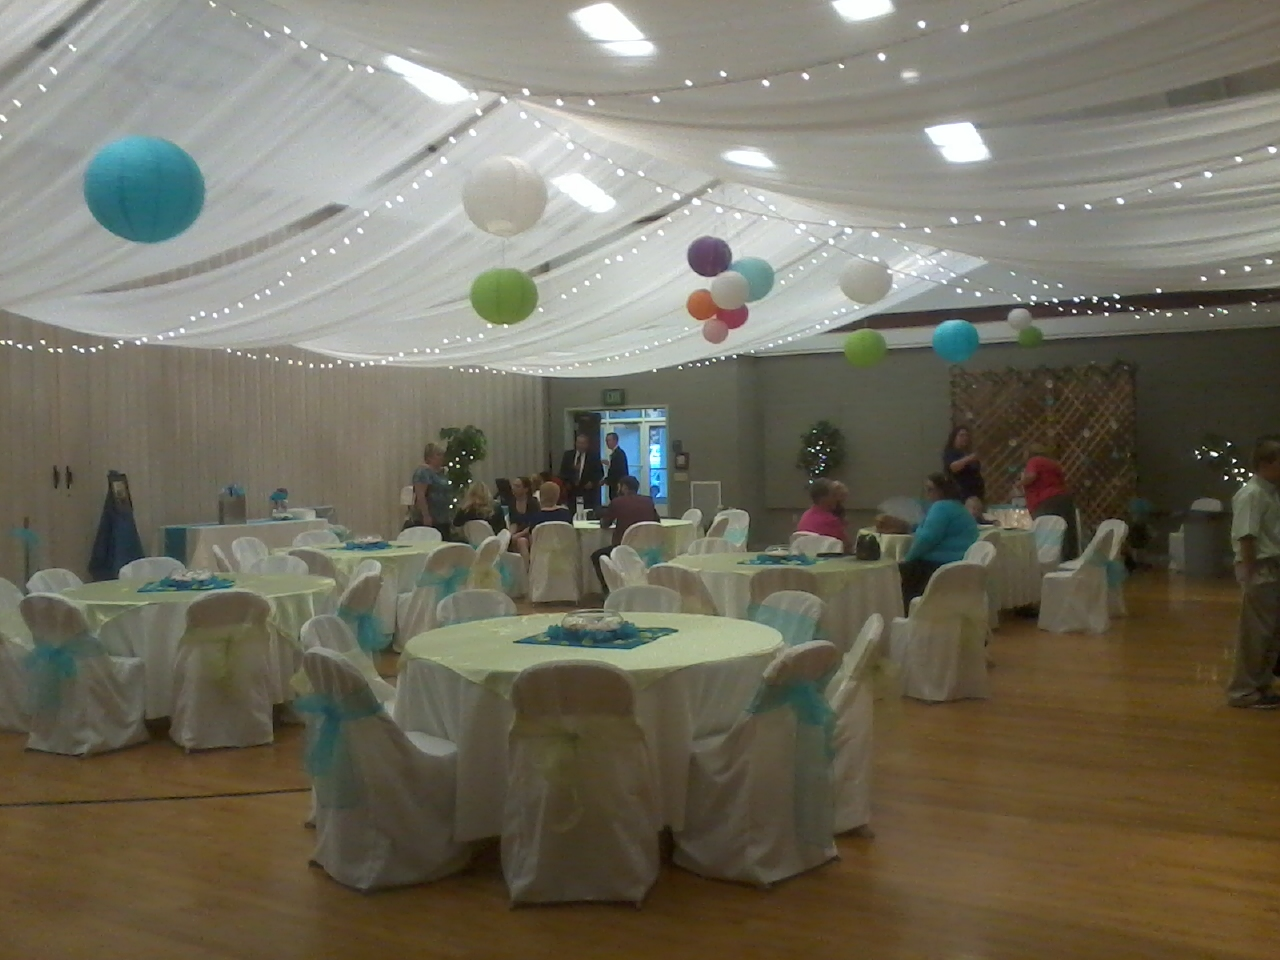 Fabric Ceiling Draping With Lights And Colored Accent Decor Changes A Church Gym Or Rental Hall Into An Awesome Wedding Venue